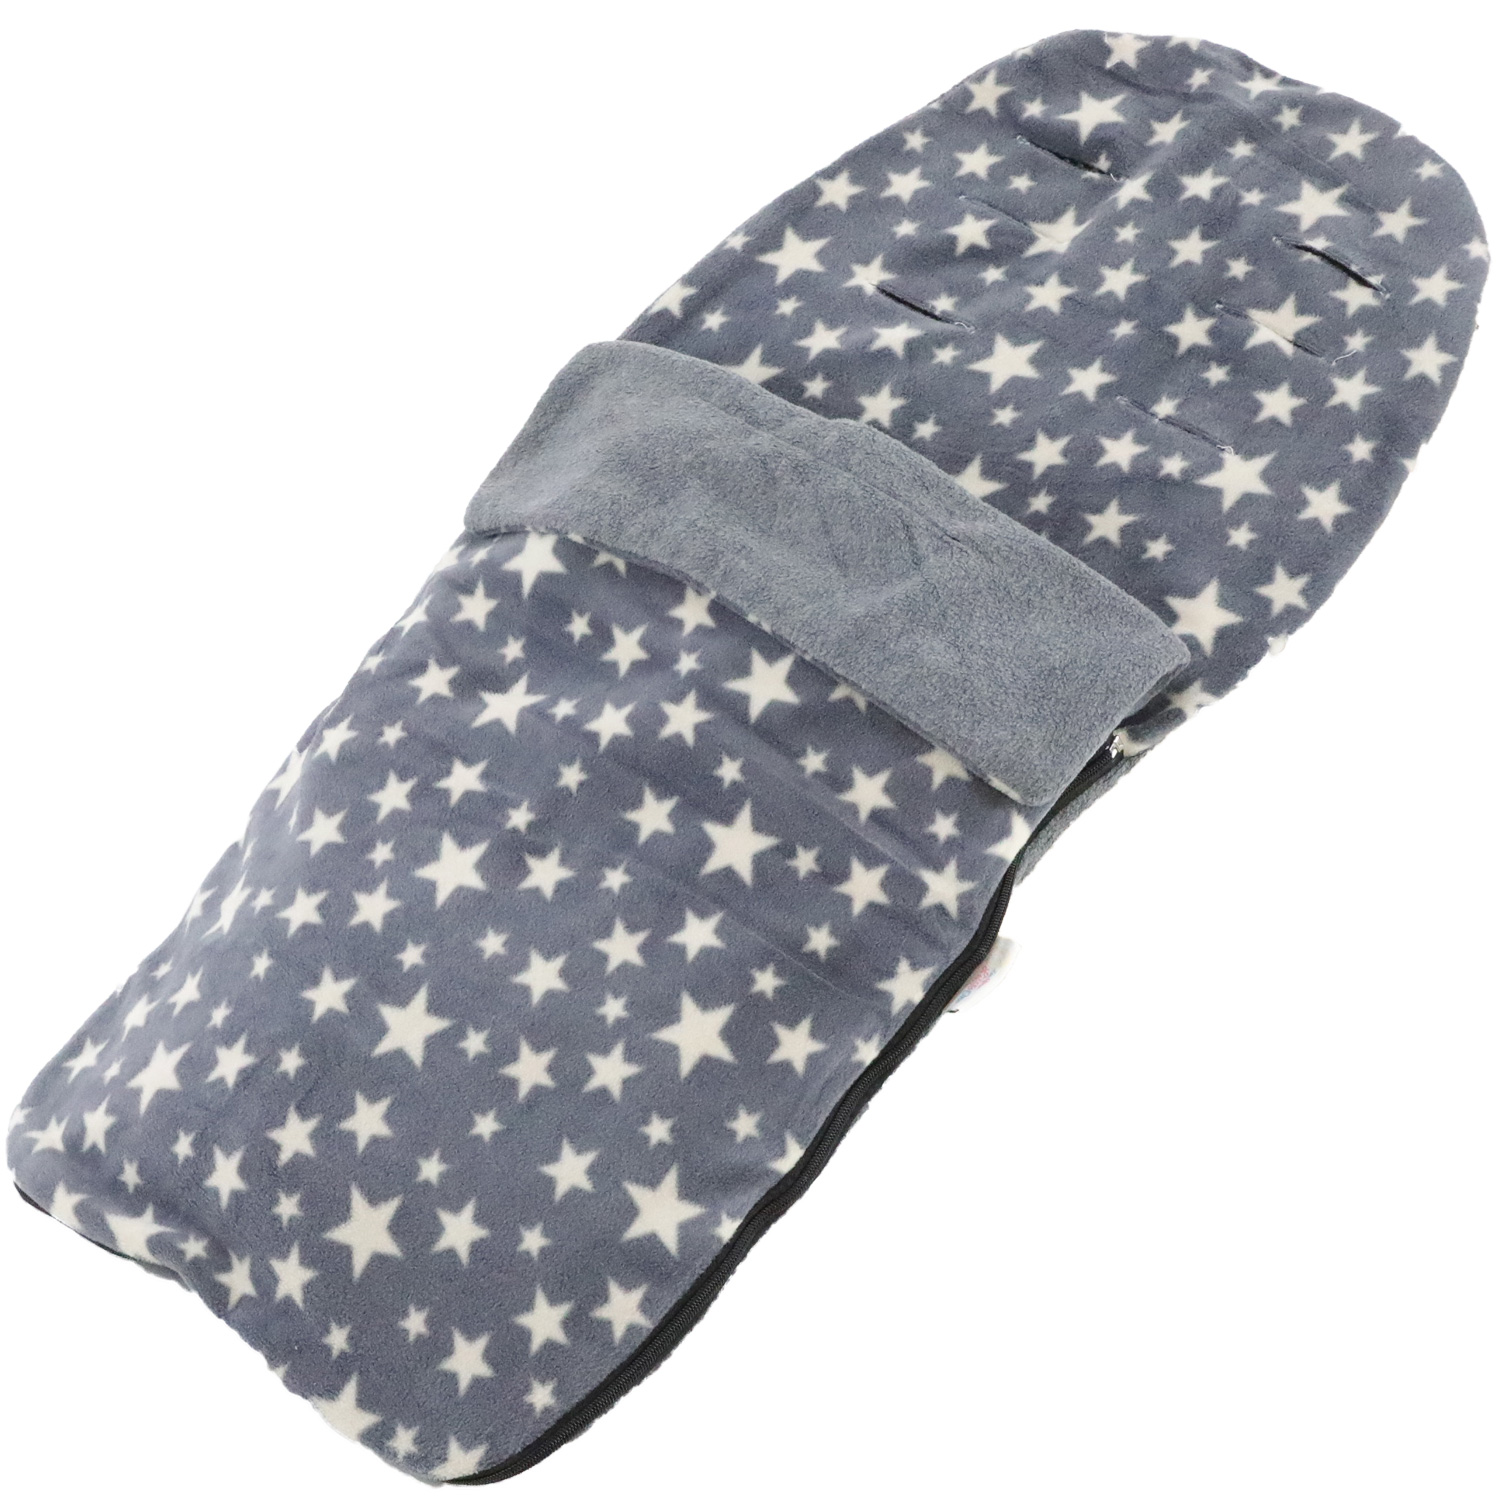 Snuggle Summer Footmuff Compatible with Mountain Buggy